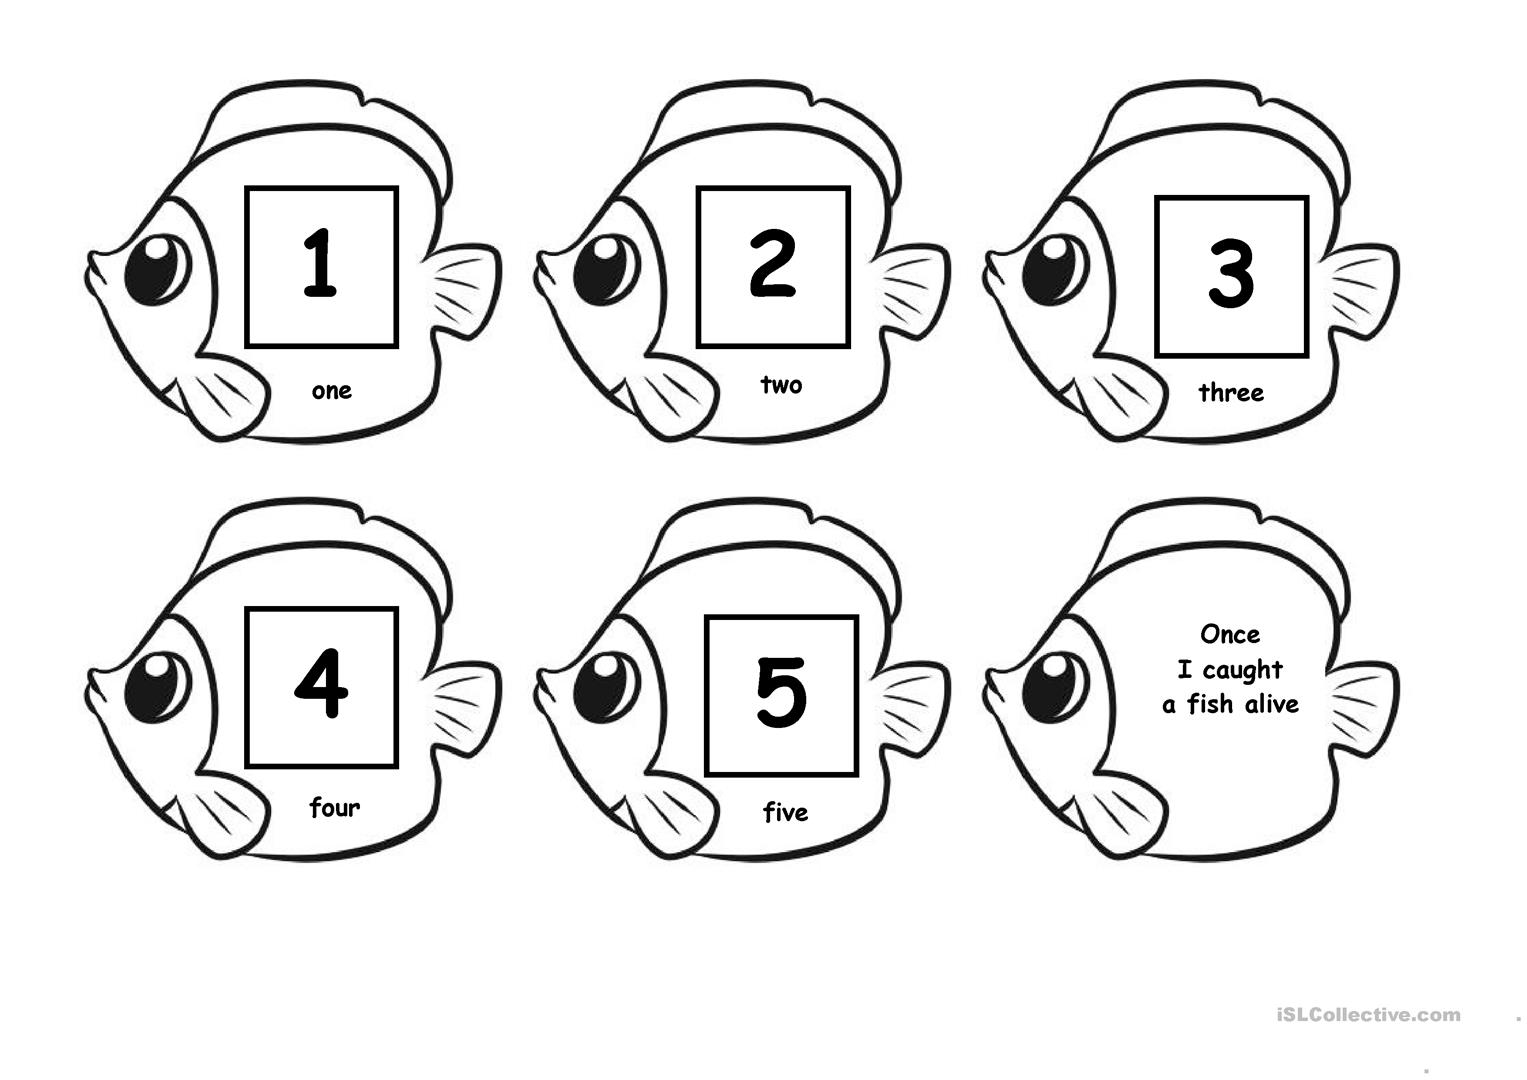 1 2 3 4 5 Once I Caught A Fish A Live Worksheet